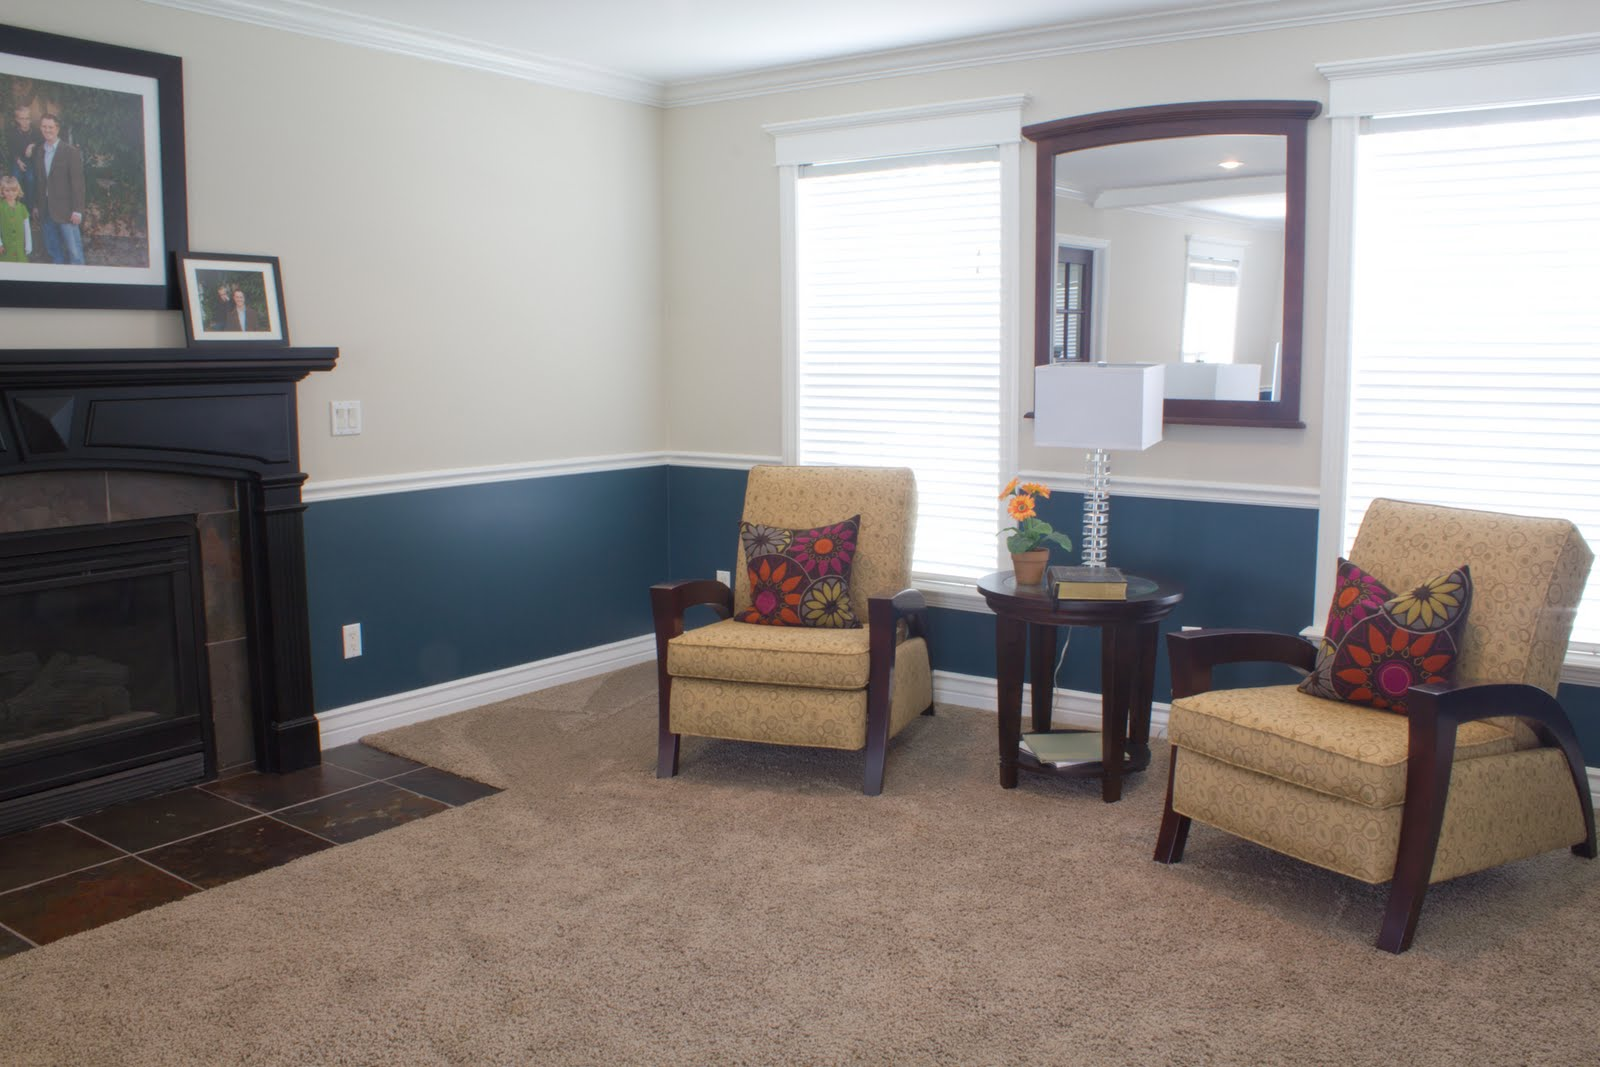 Paint ideas for rooms with chair rails - This Is A Quick Shot Of The Living Room We Helped The Client Decide What Color Teal And Where To Paint It I E Above Or Below The Chair Rail Or Do You